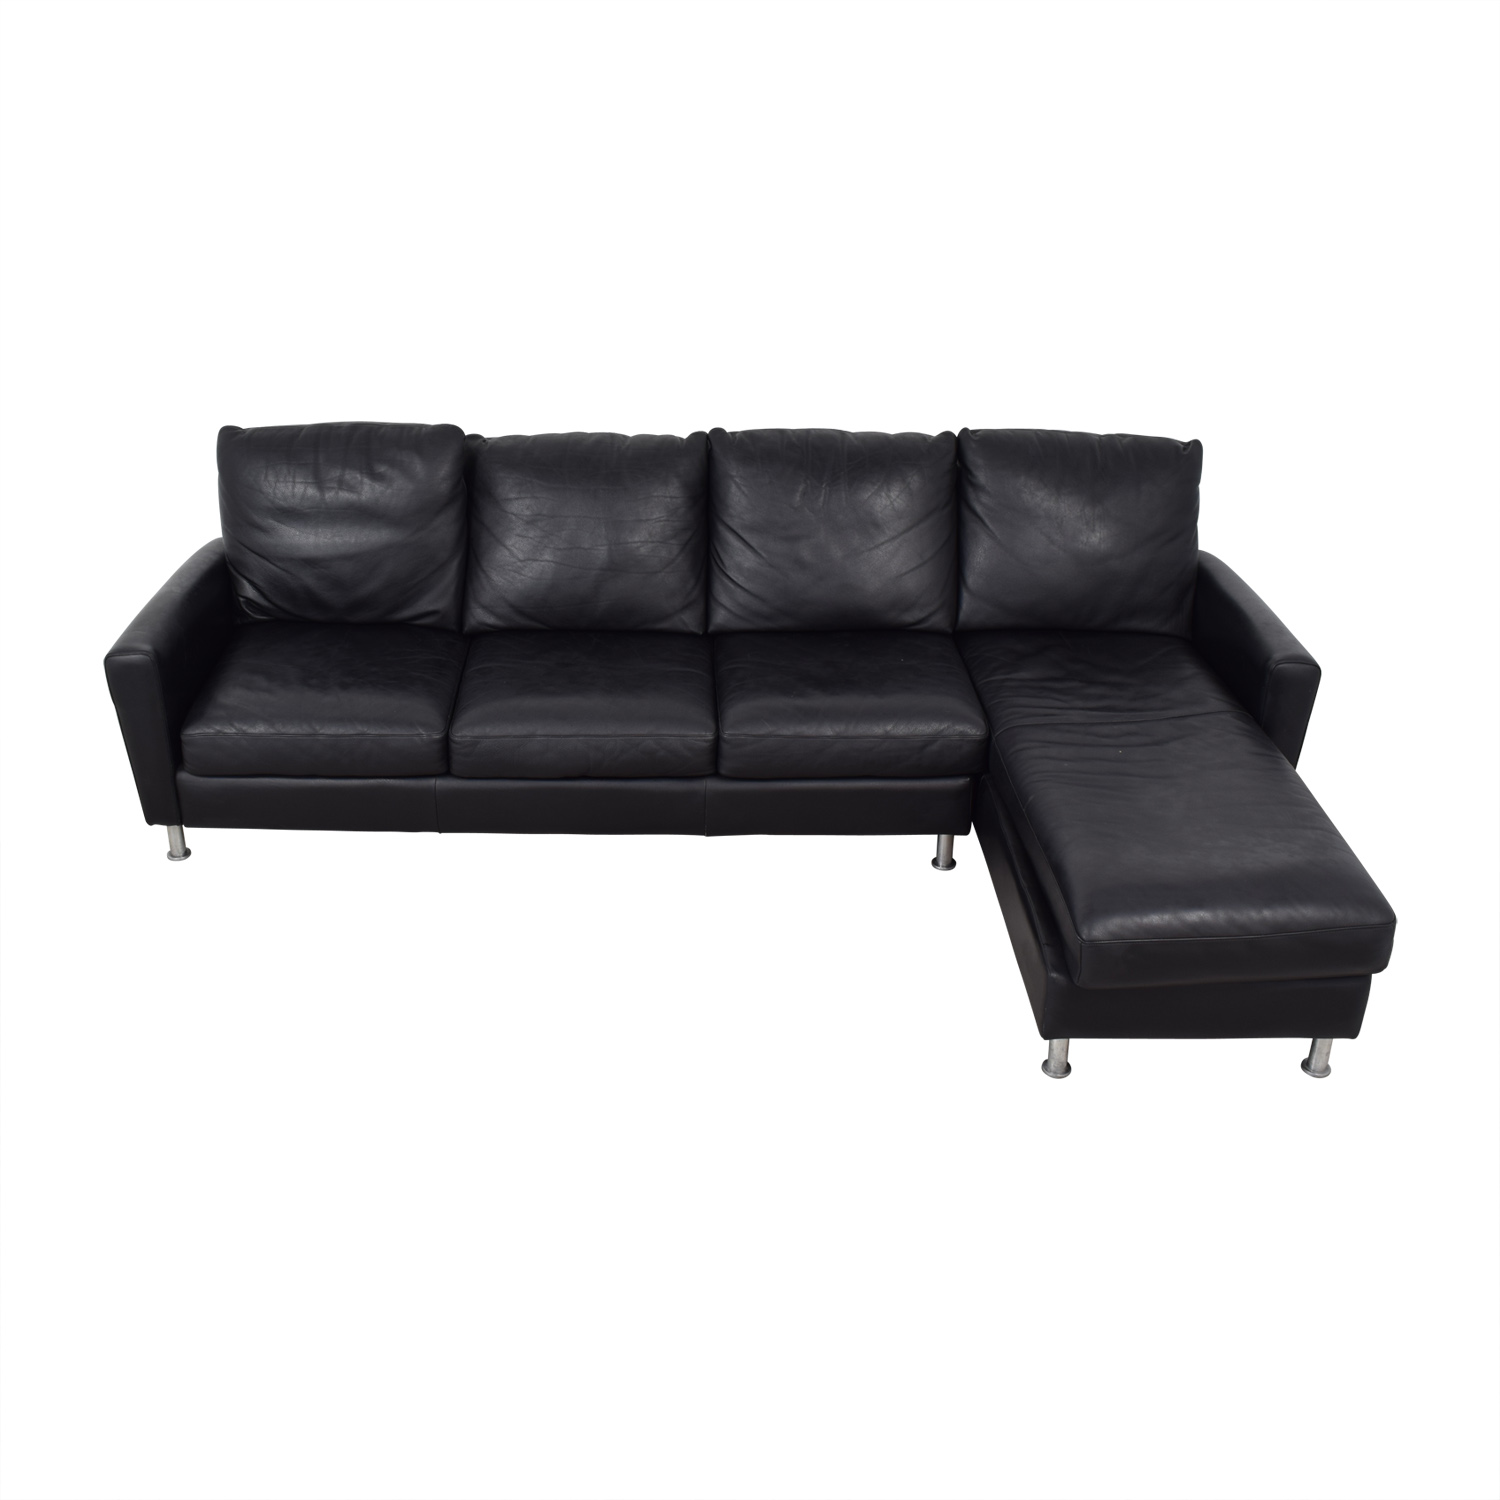 American Leather Company American Leather Company Sectional With Chaise nj